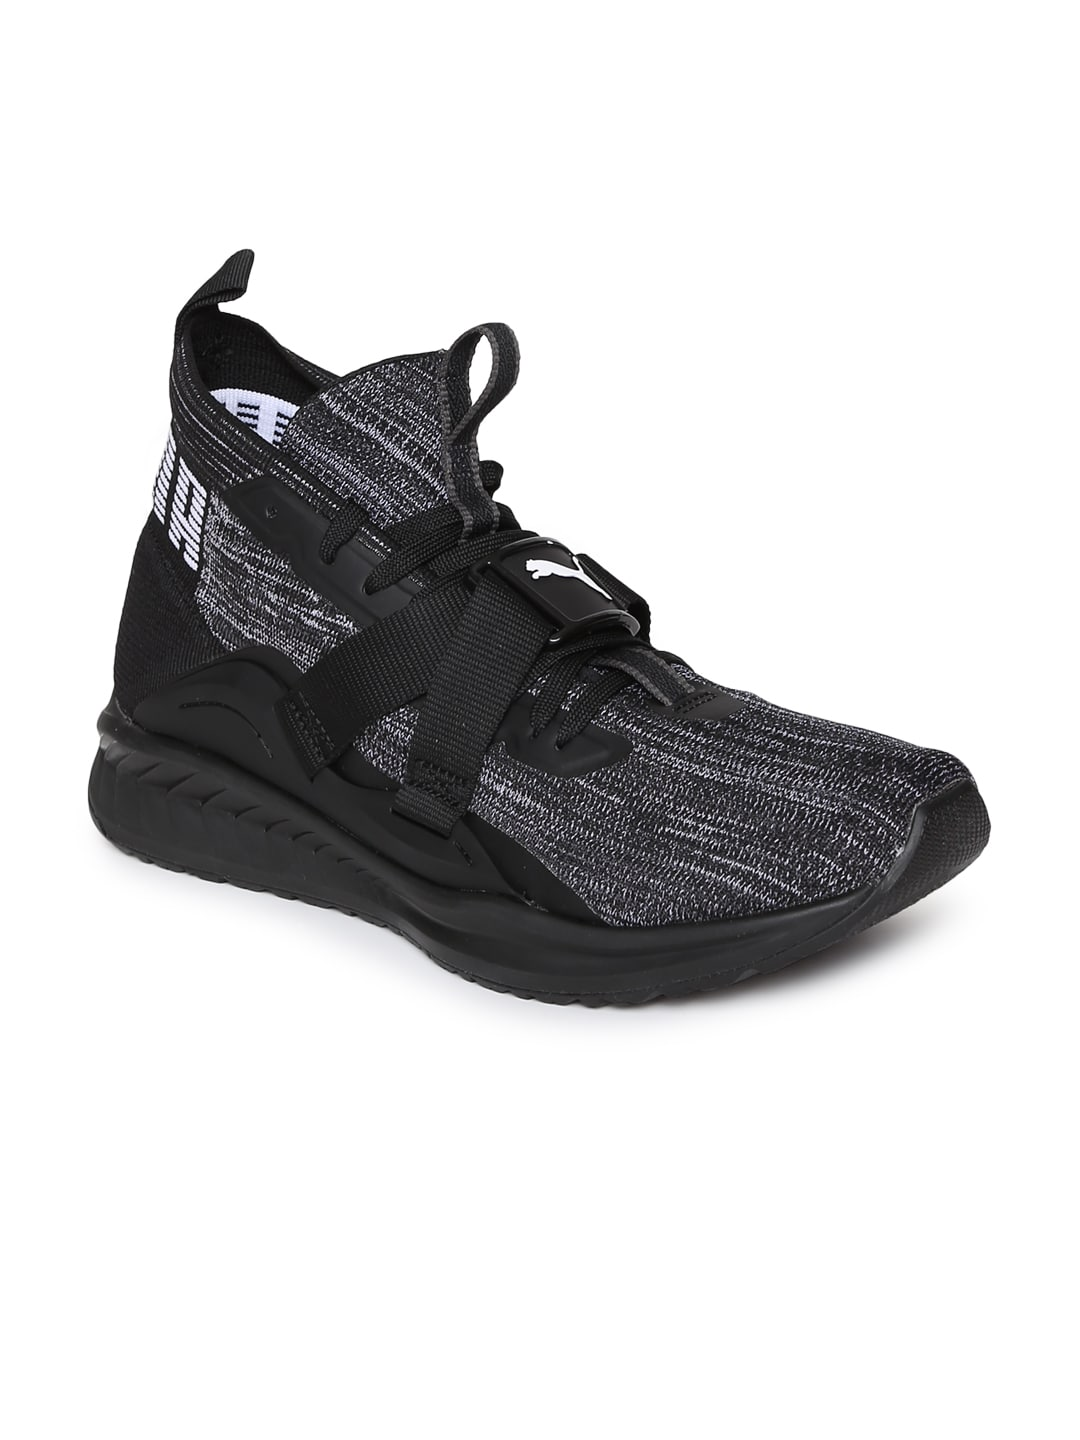 fde2e0fea4d621 Buy Puma Men Black   Grey Enzo Terrain Asphalt Running Shoes ...